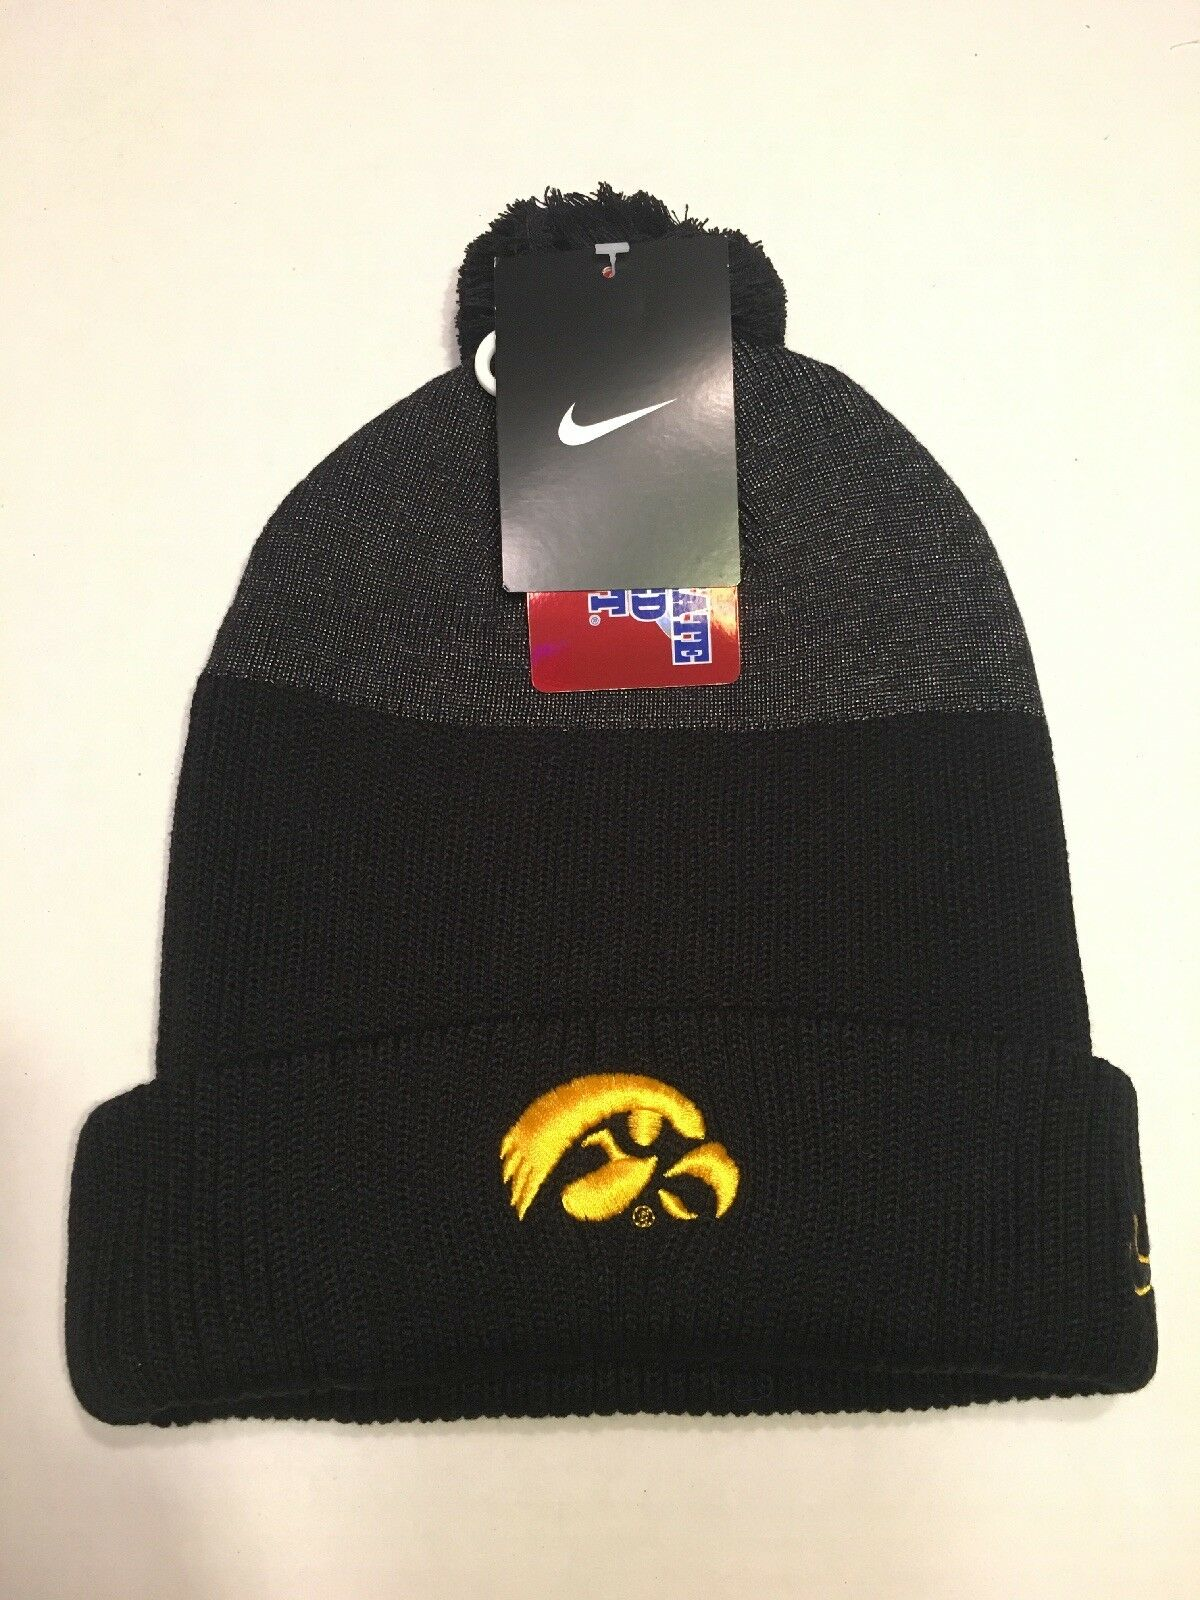 f3990a20 Nike Men's College Day Cuffed Beanie Hat Pom Top Iowa Hawkeyes 1 ...